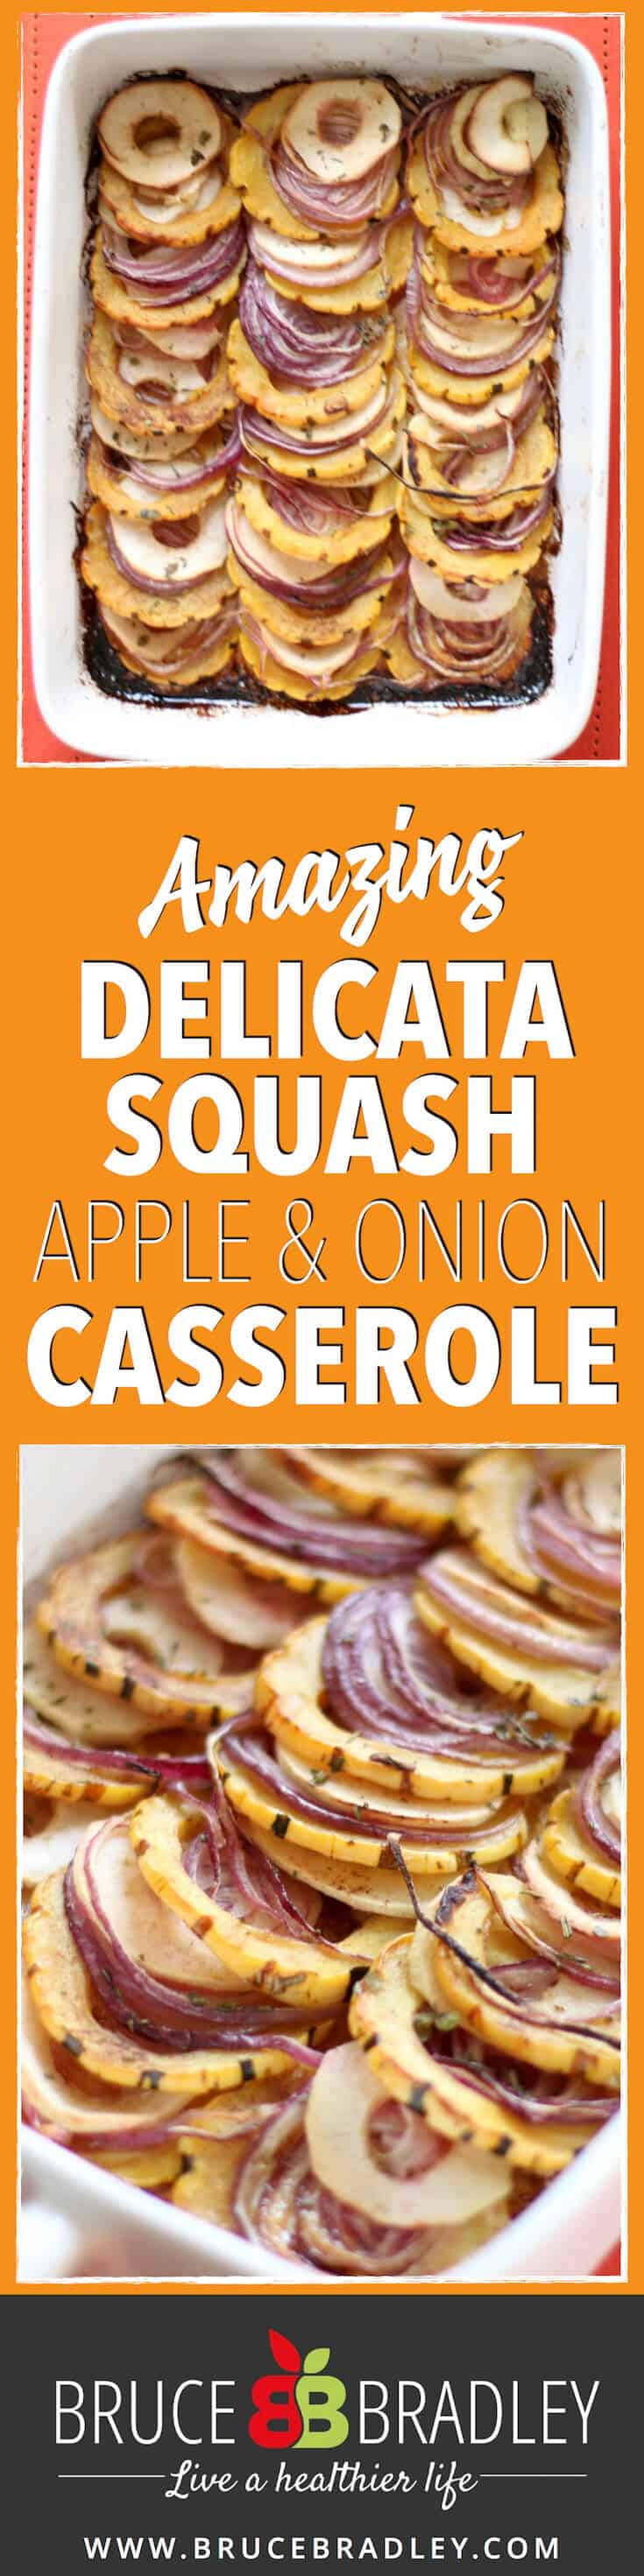 Replace your sugary sweet potato casserole with a new squash side dish that's an easy, delicious addition for your Thanksgiving! This amazing delicata squash tian with apples and onions is sure to become a holiday favorite!